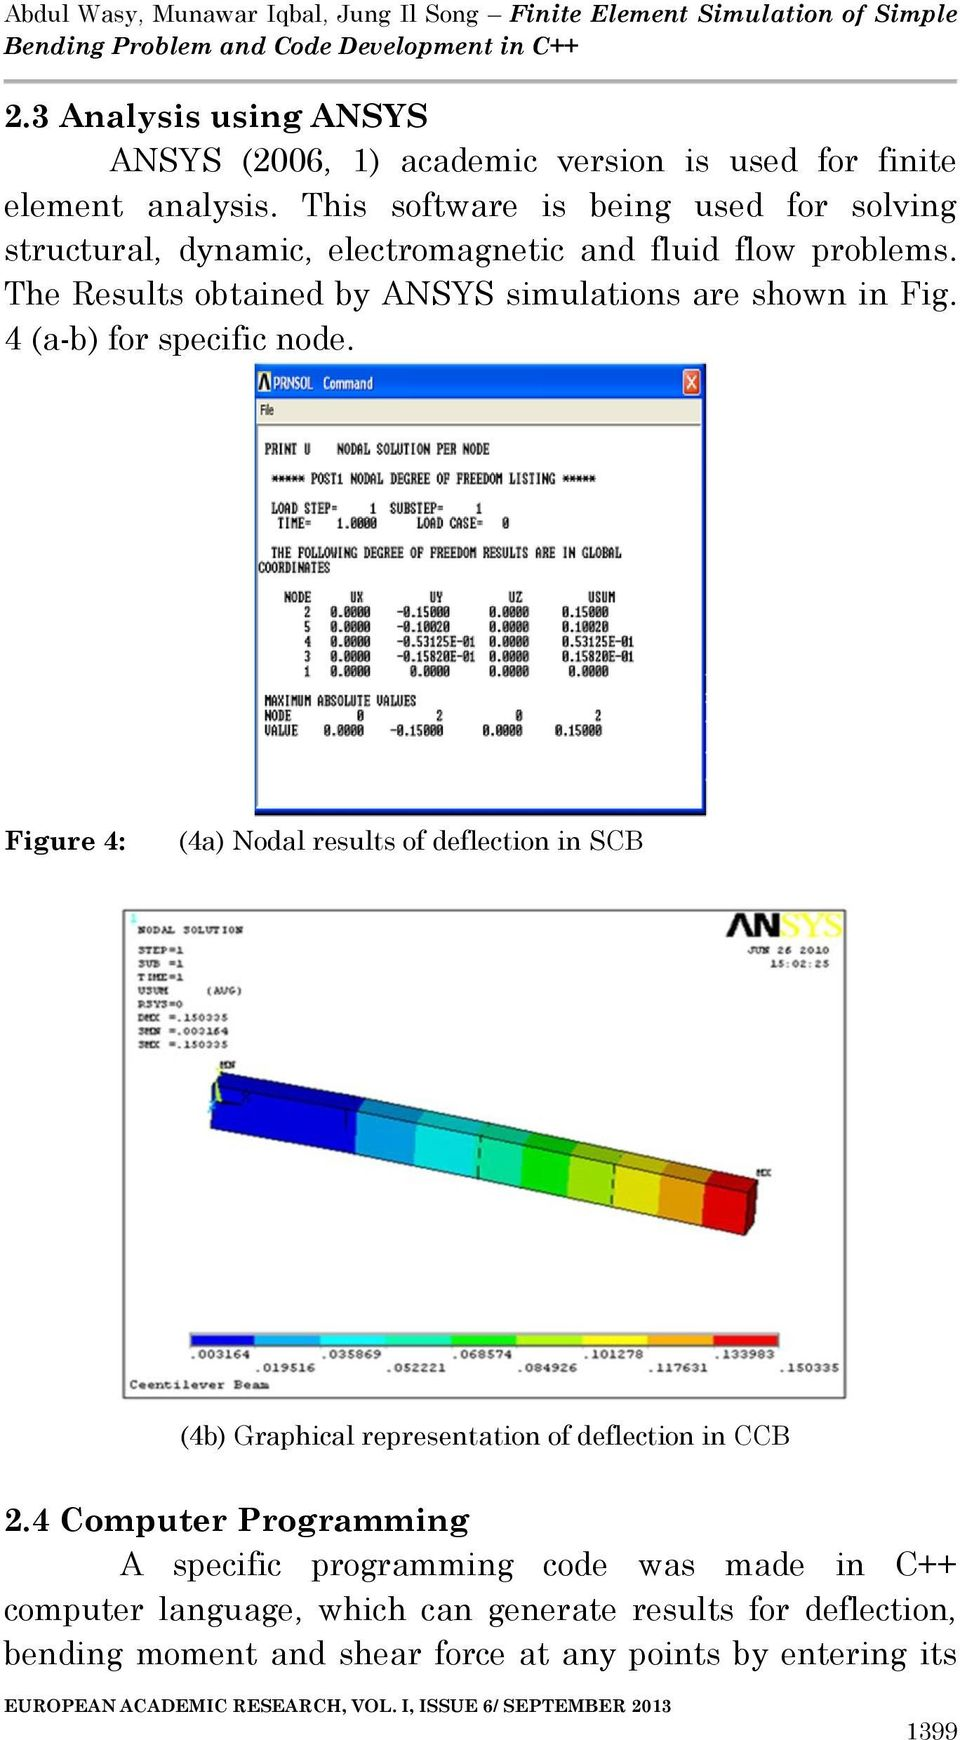 Finite Element Simulation Of Simple Bending Problem And Code Moment Diagram Software The Results Obtained By Ansys Simulations Are Shown In Fig 4 A B For